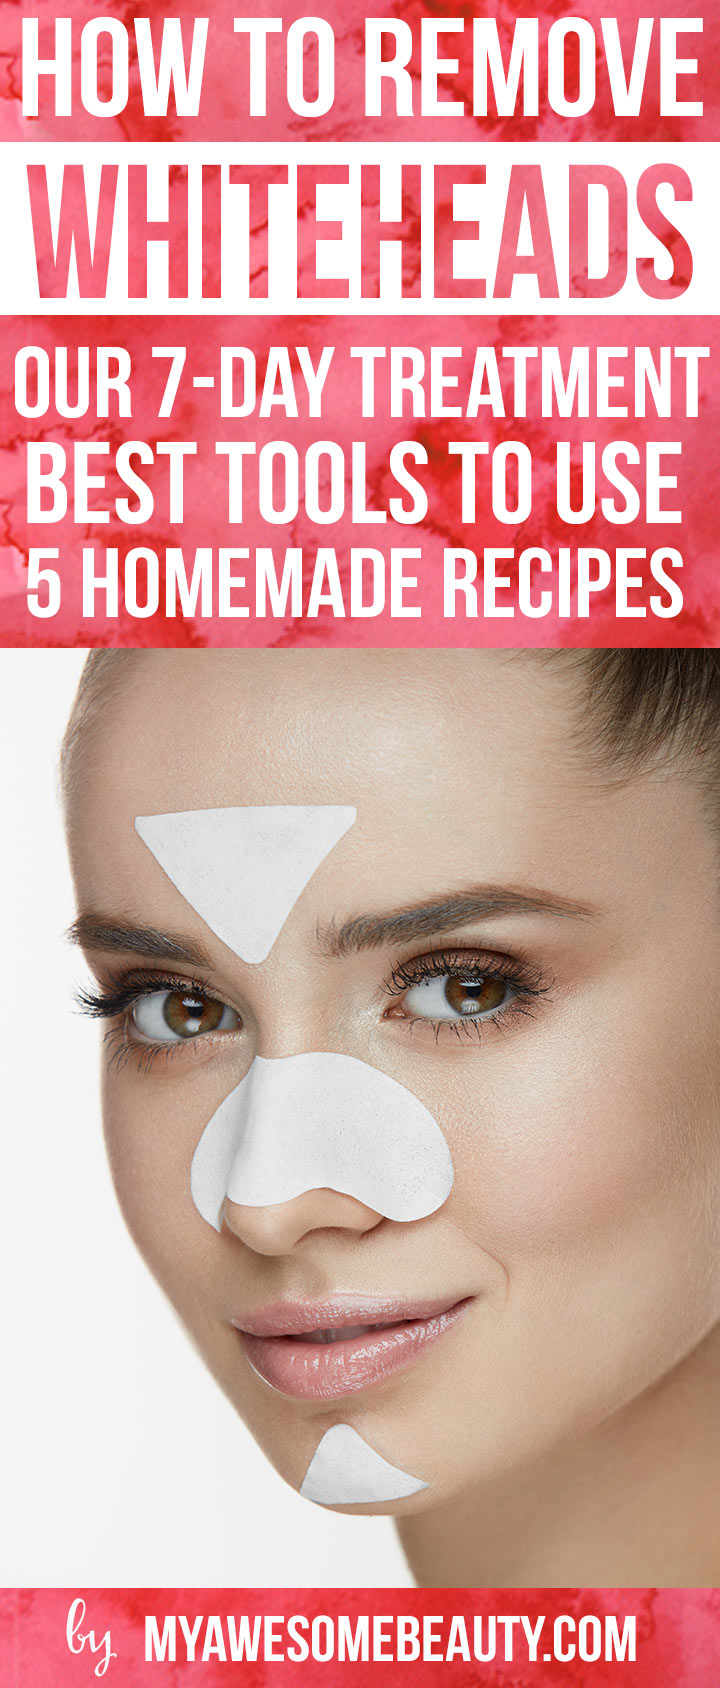 How to get rid of bumps on face overnight